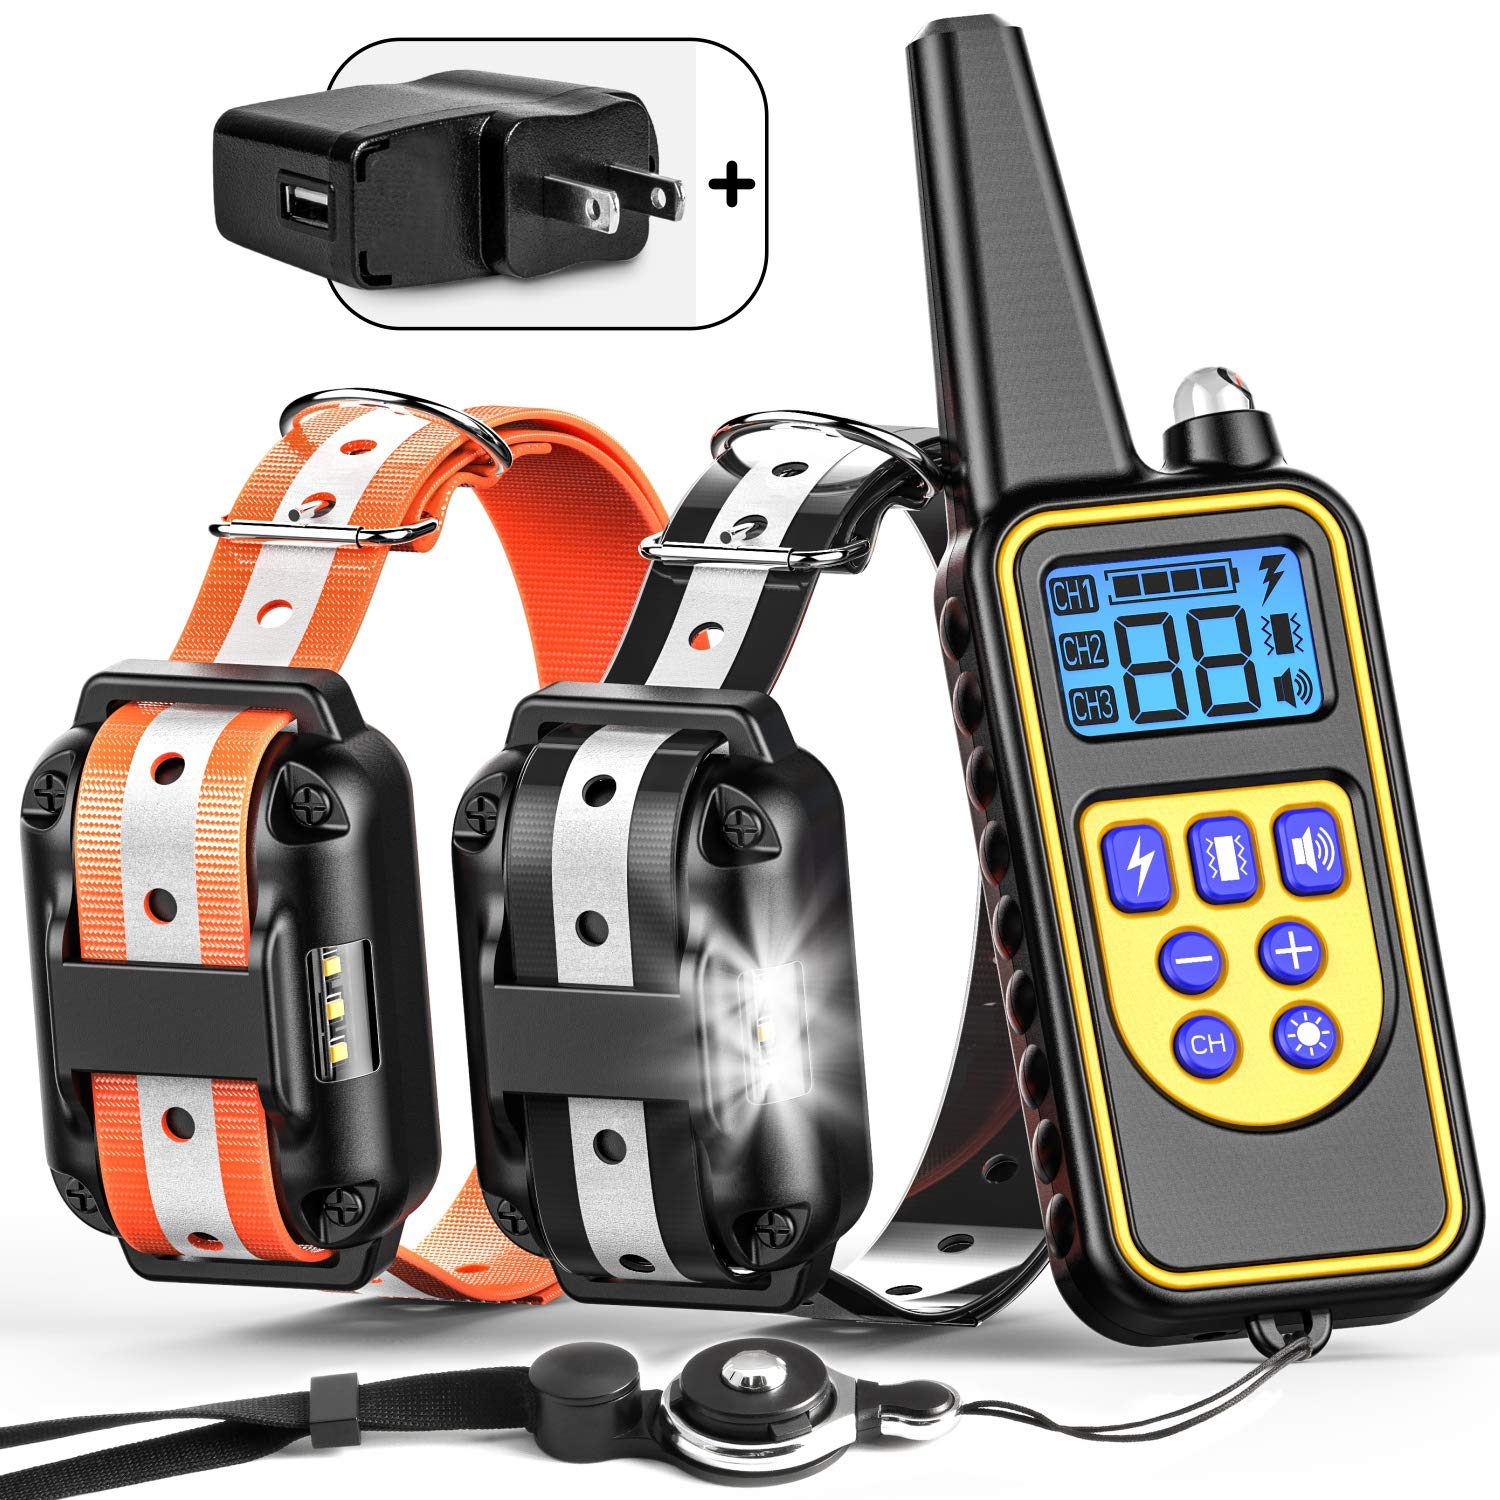 BuddiPets Dog Training Collar, 2018 Upgraded Reflect Light for Safety Waterproof Shock Collar for Dogs 2600ft Remote LED Light Tone Vibration Shock Dog Shock Collar for Medium Large Breed, Adapter